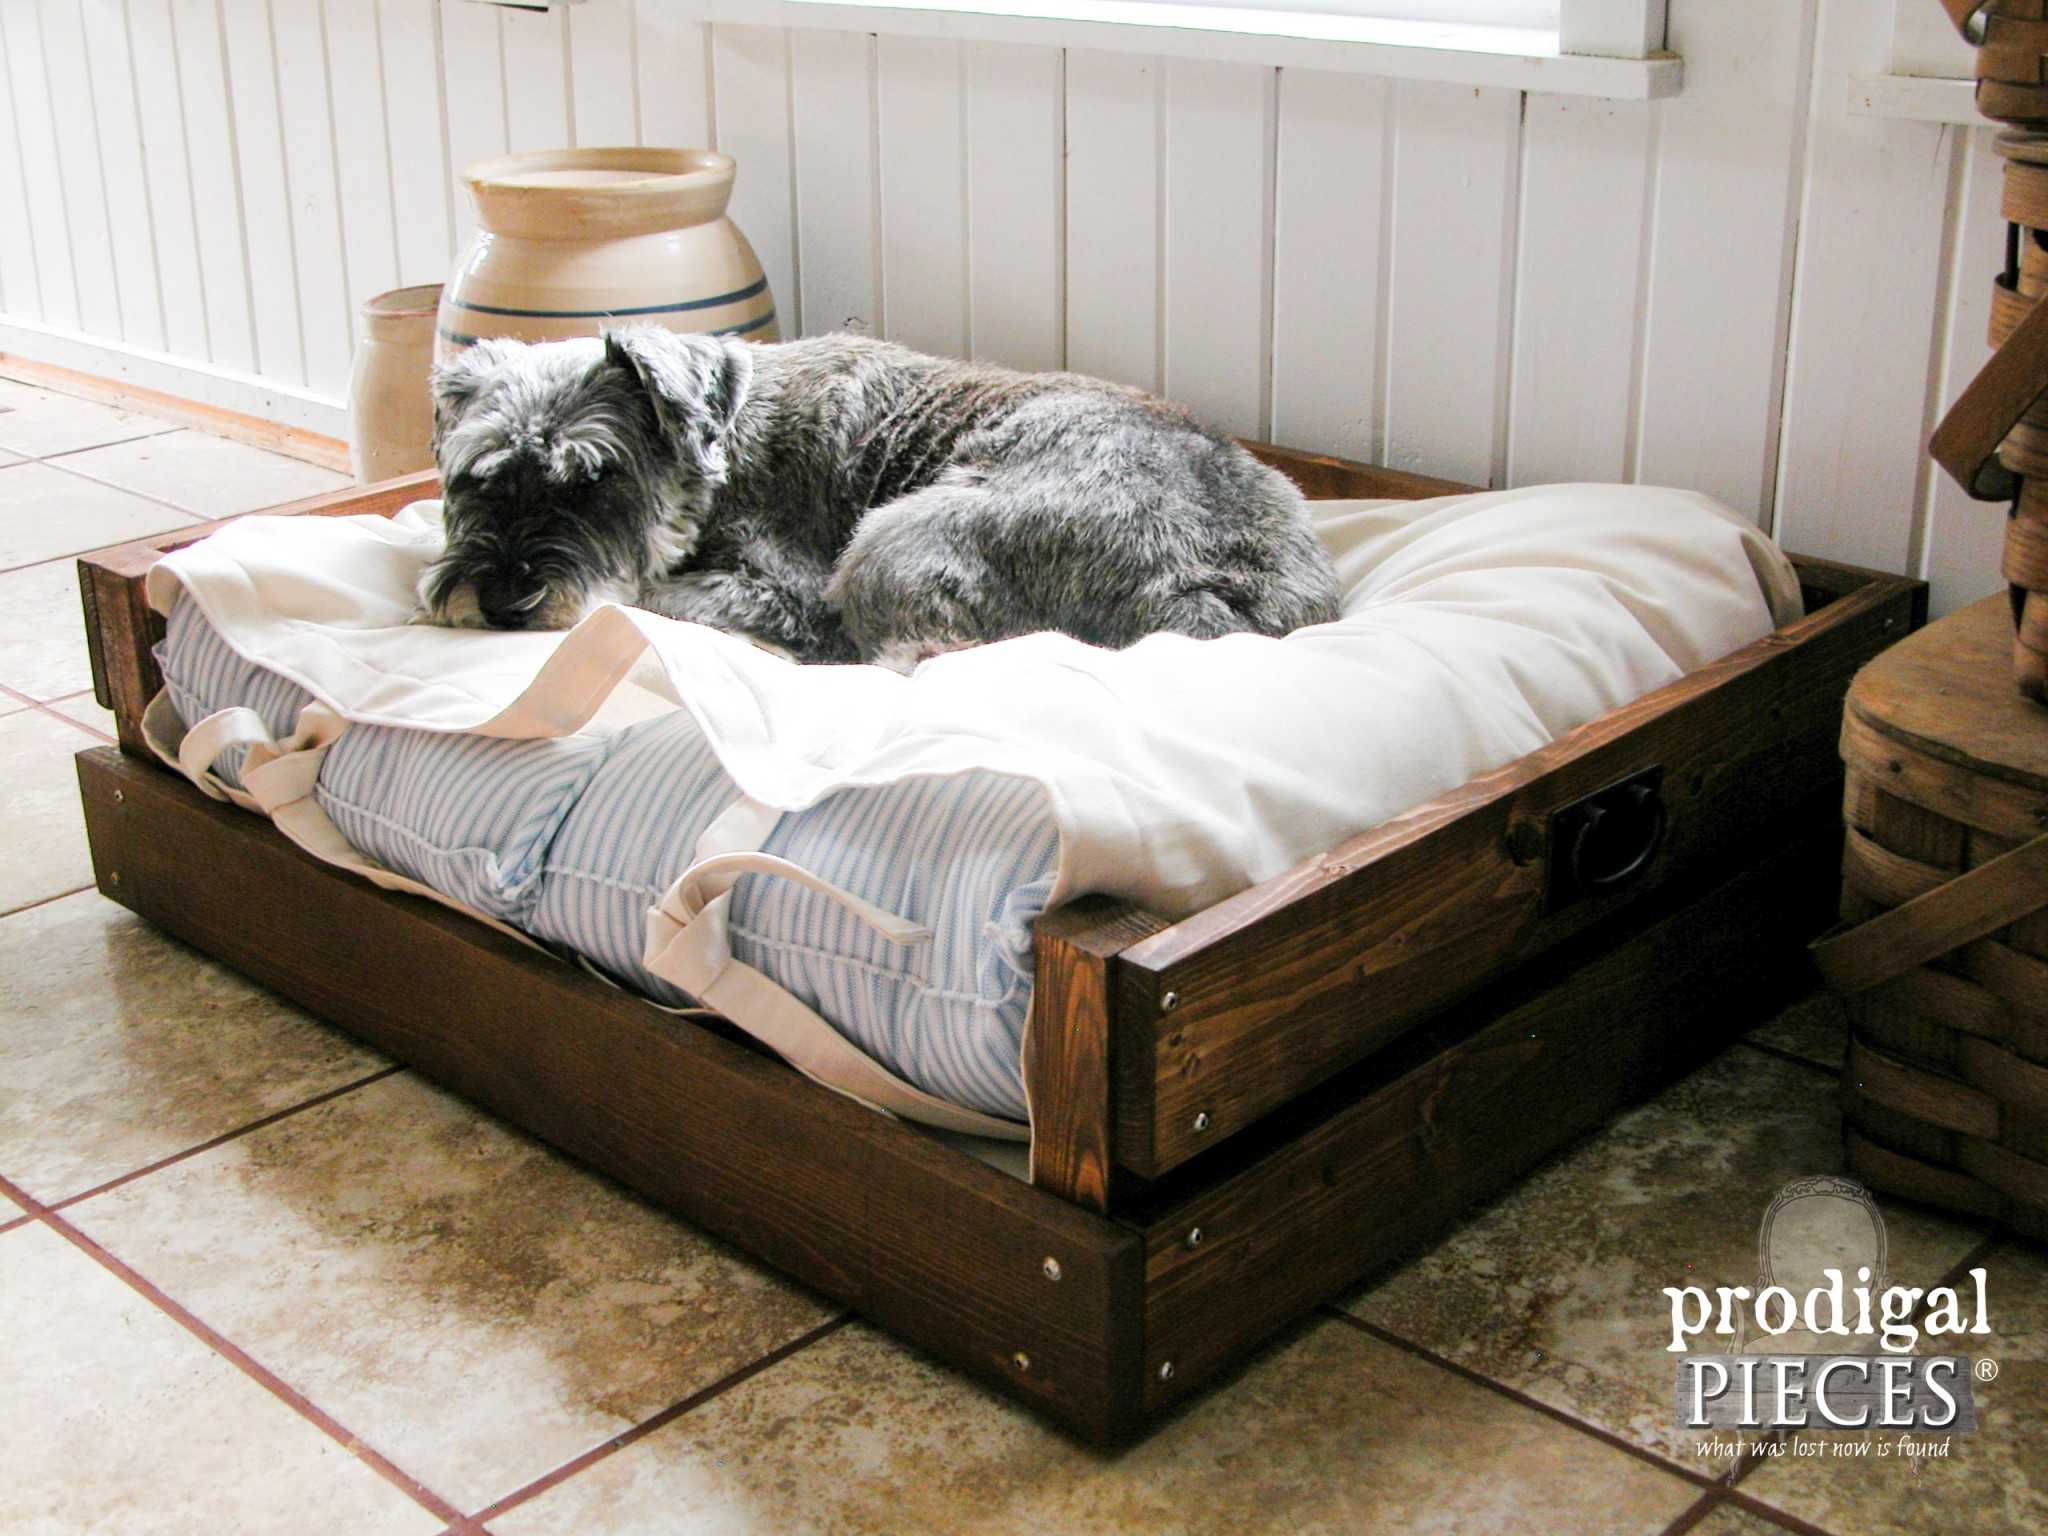 Dog Laying in DIY Pet Bed by Prodigal Pieces | www.prodigalpieces.cm